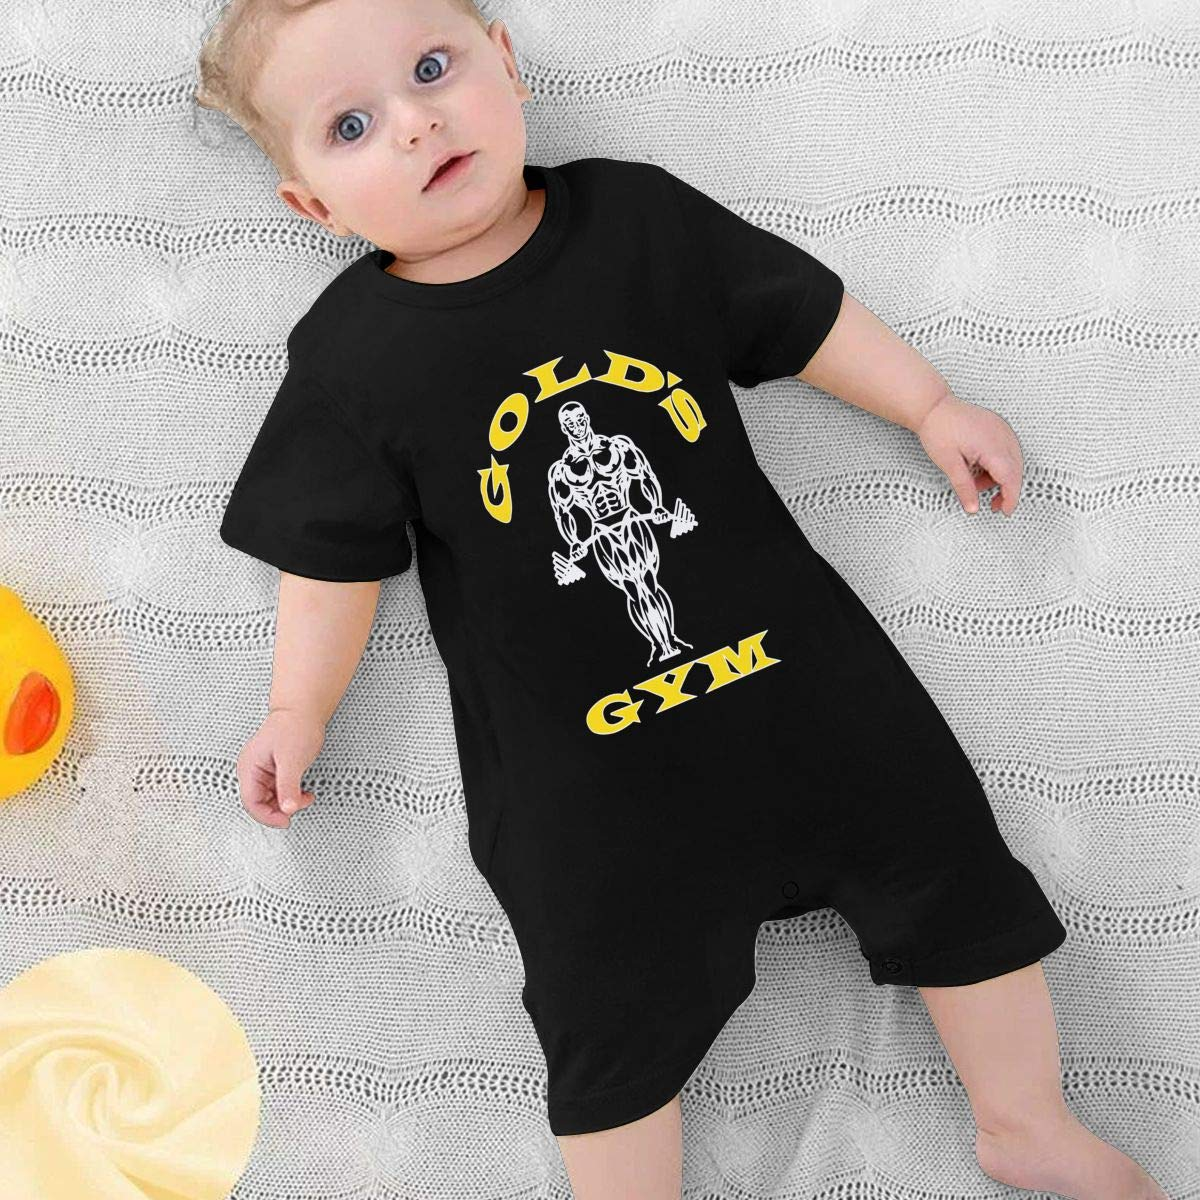 Baby Boys Girls Romper Jumpsuit Golds Gym Newborn Short Sleeve Bodysuits Infant Outfit Funny Onesie for 0-2T